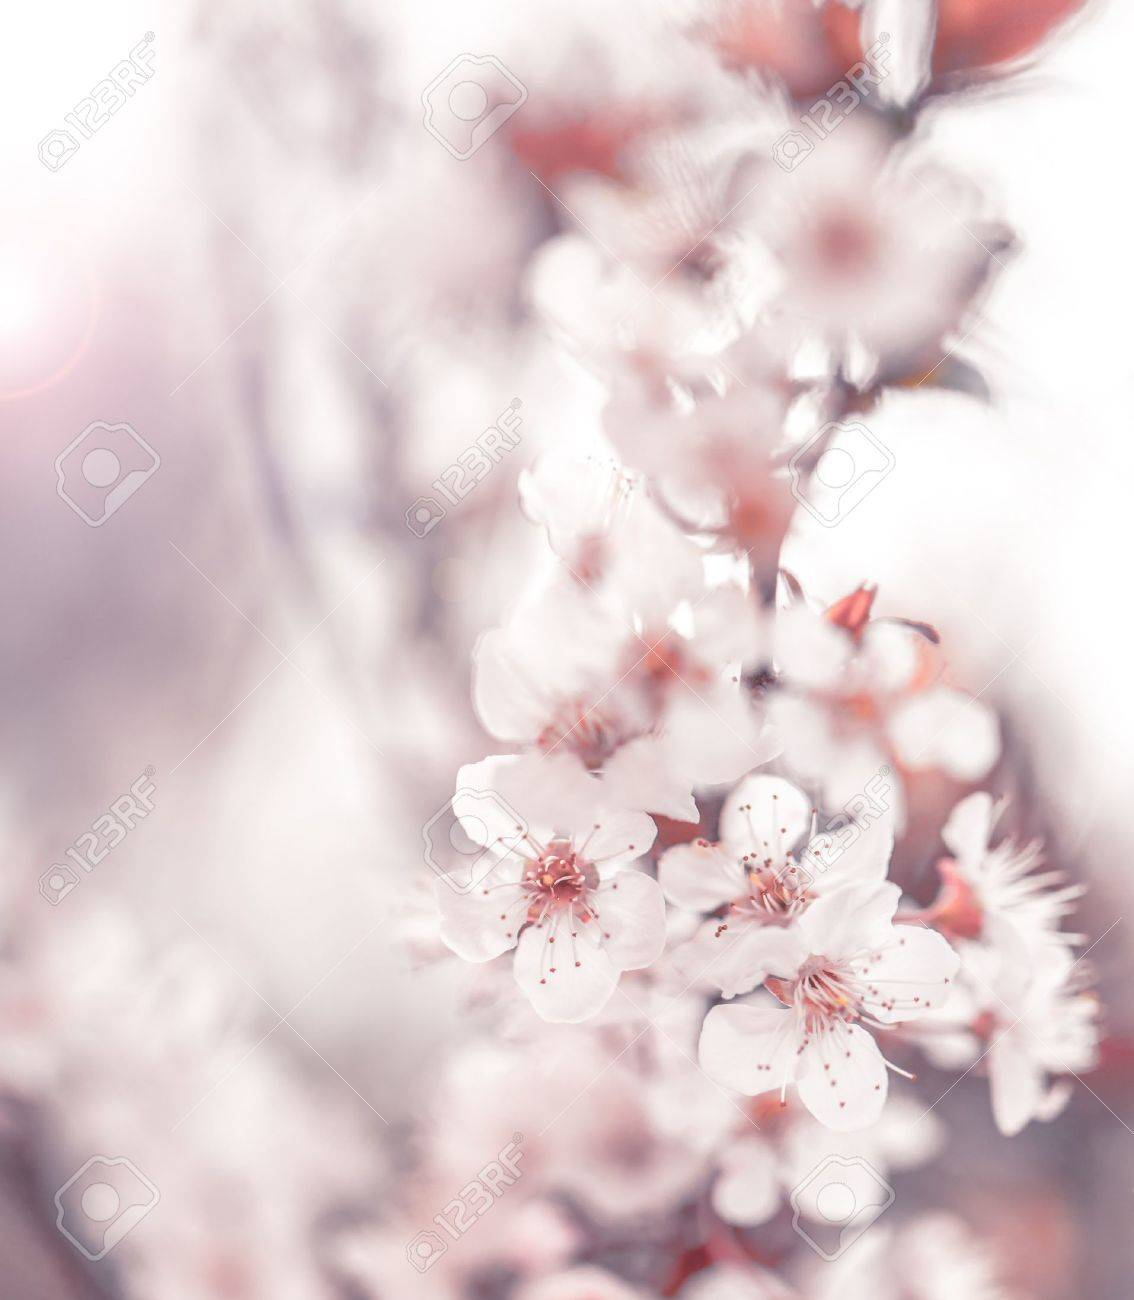 Image Of Beautiful Cherry Blossom Abstract Natural Background Fine Art Spring Time Season